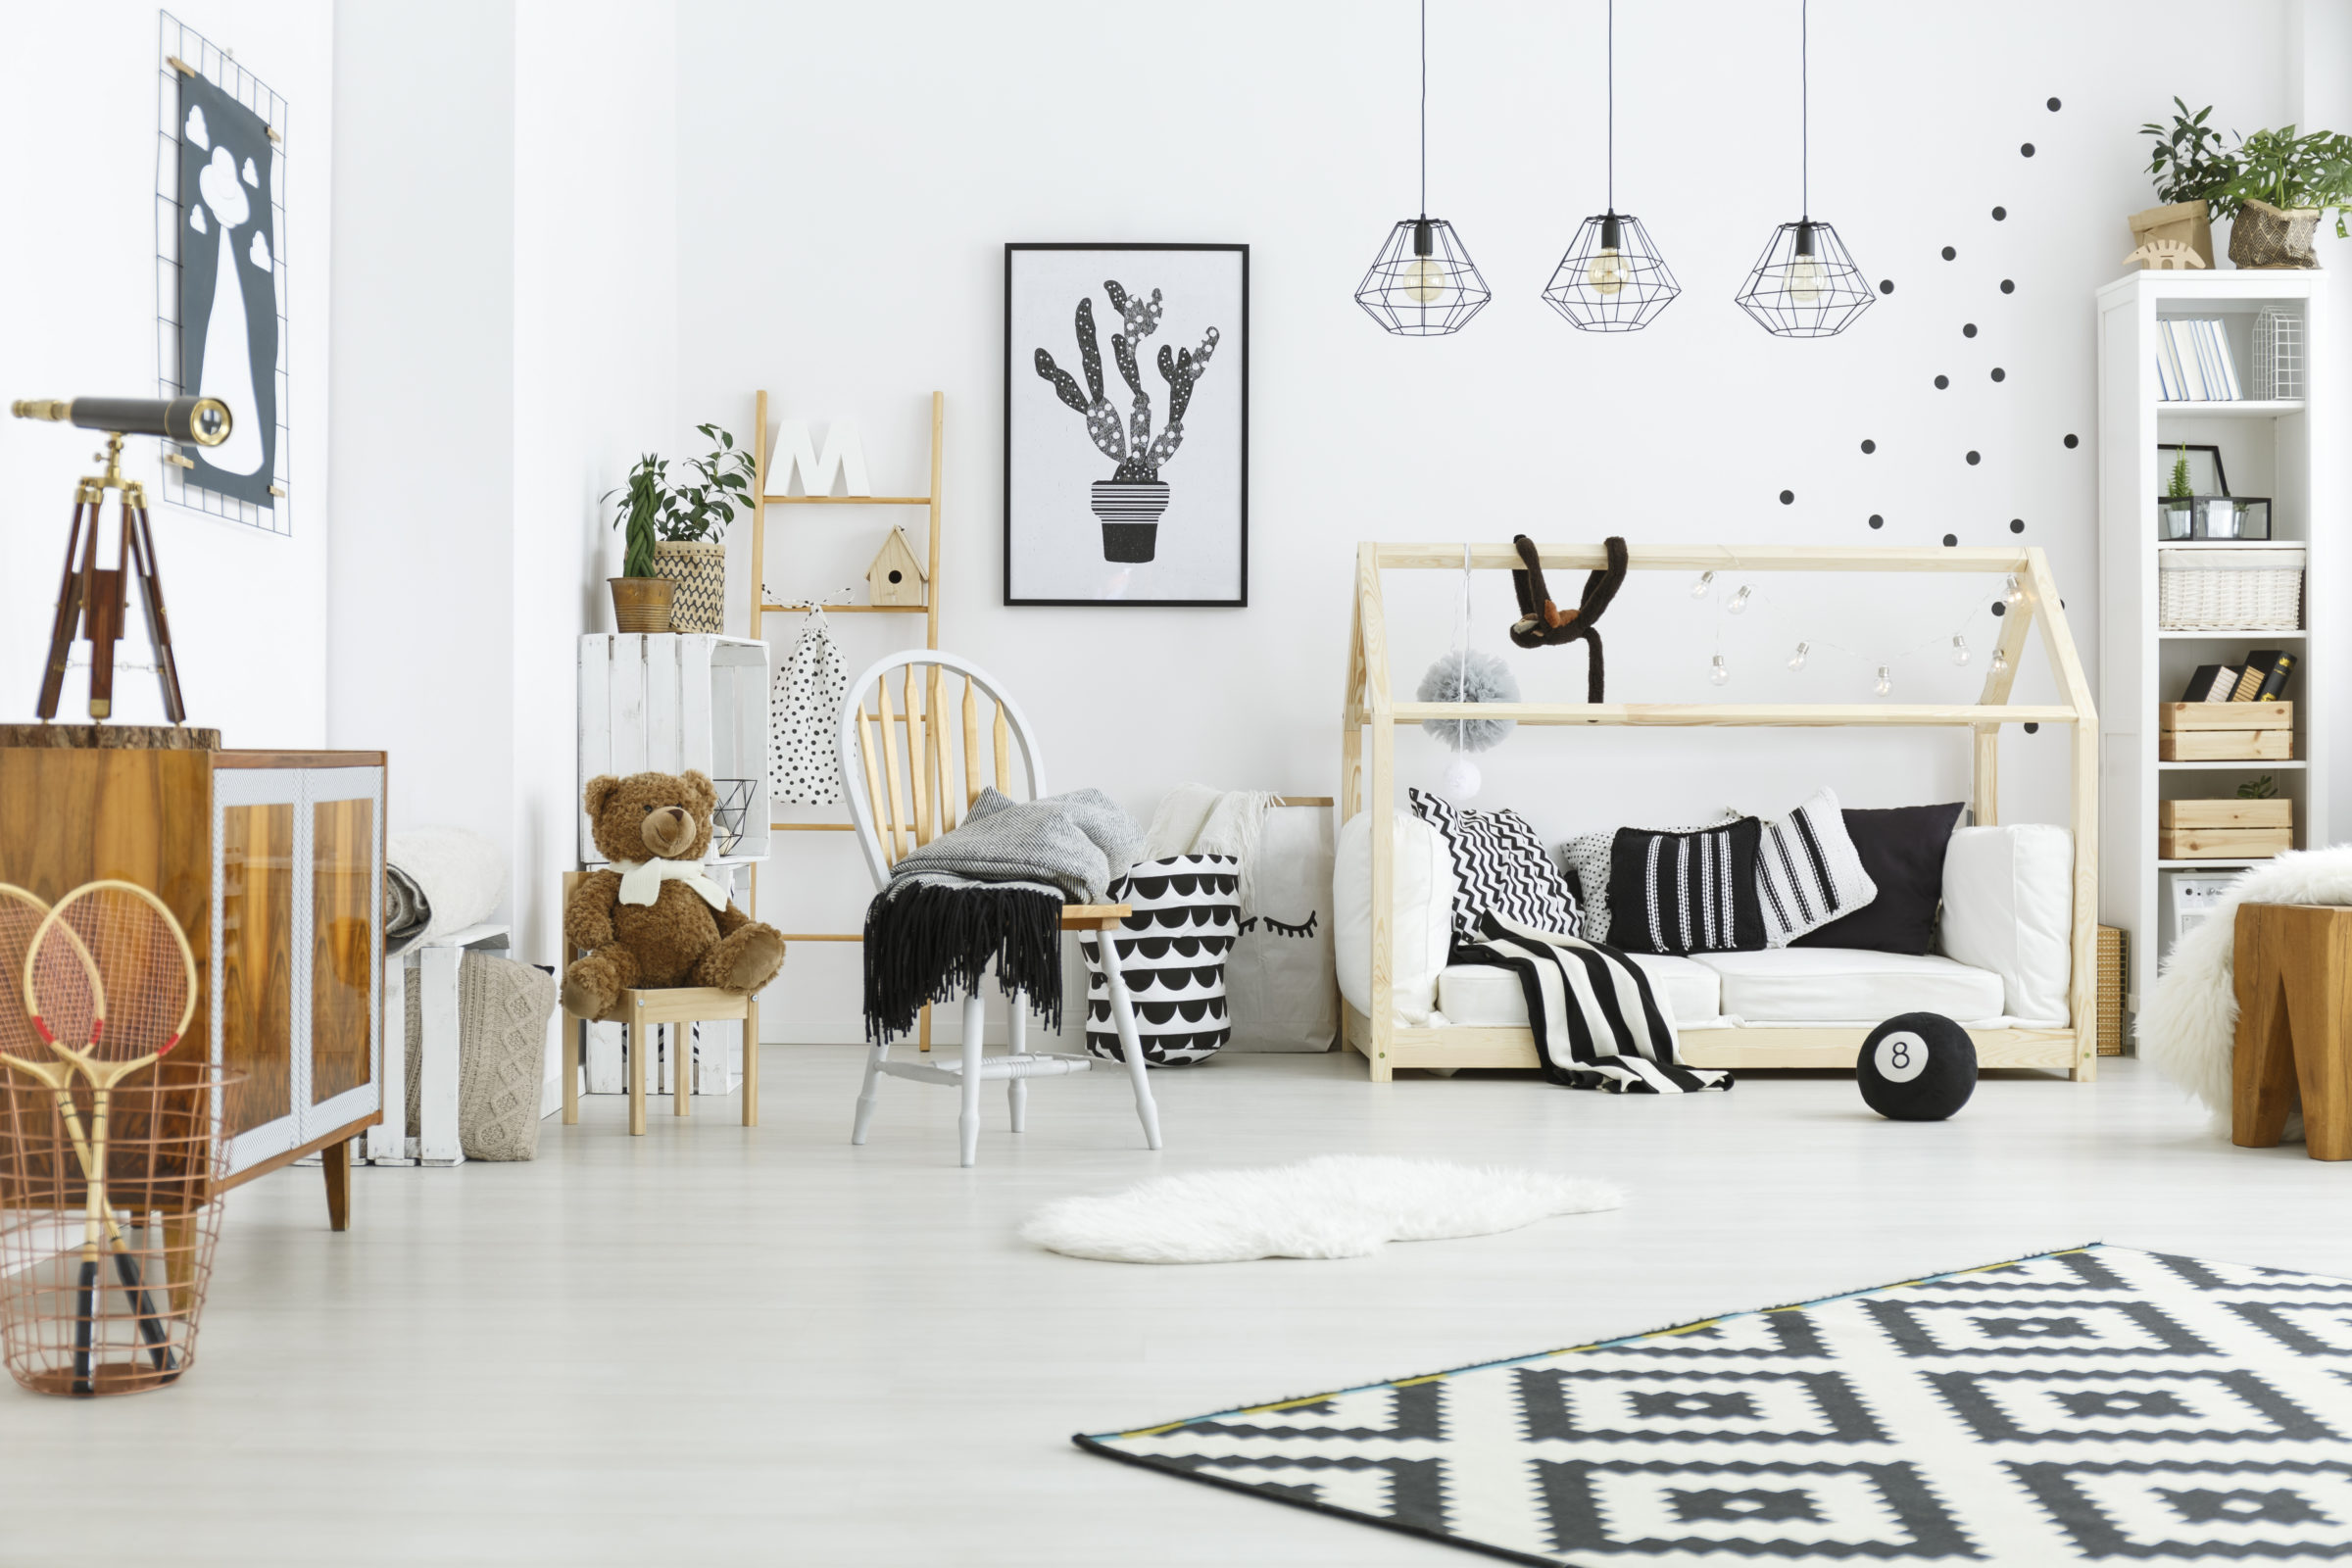 kids room with house bed P6G5K9J